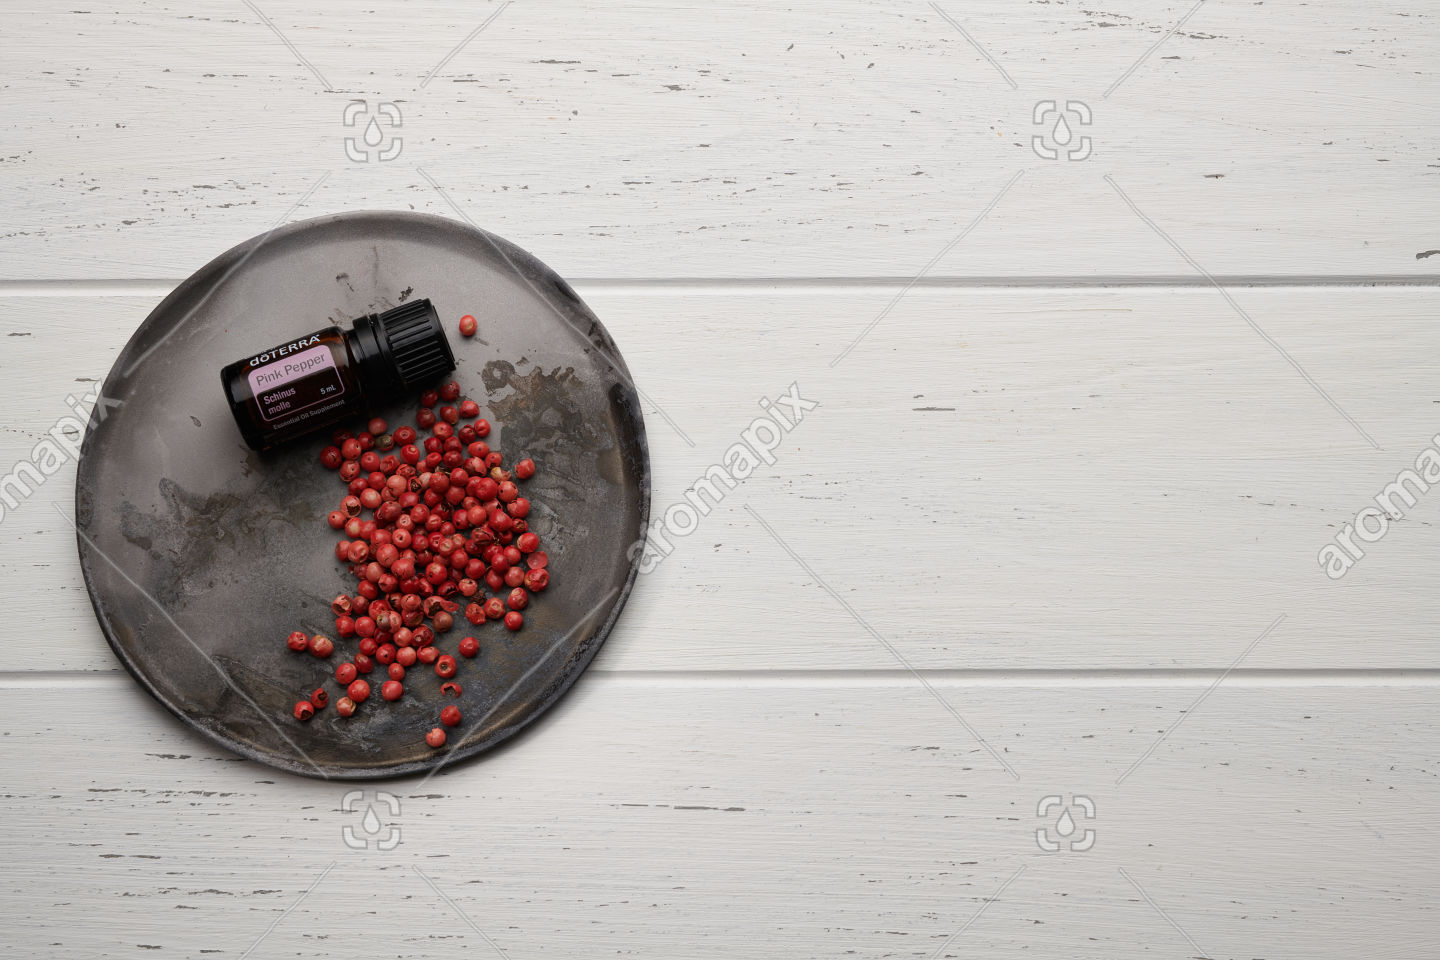 doTERRA Pink Pepper with pink peppercorns on white background